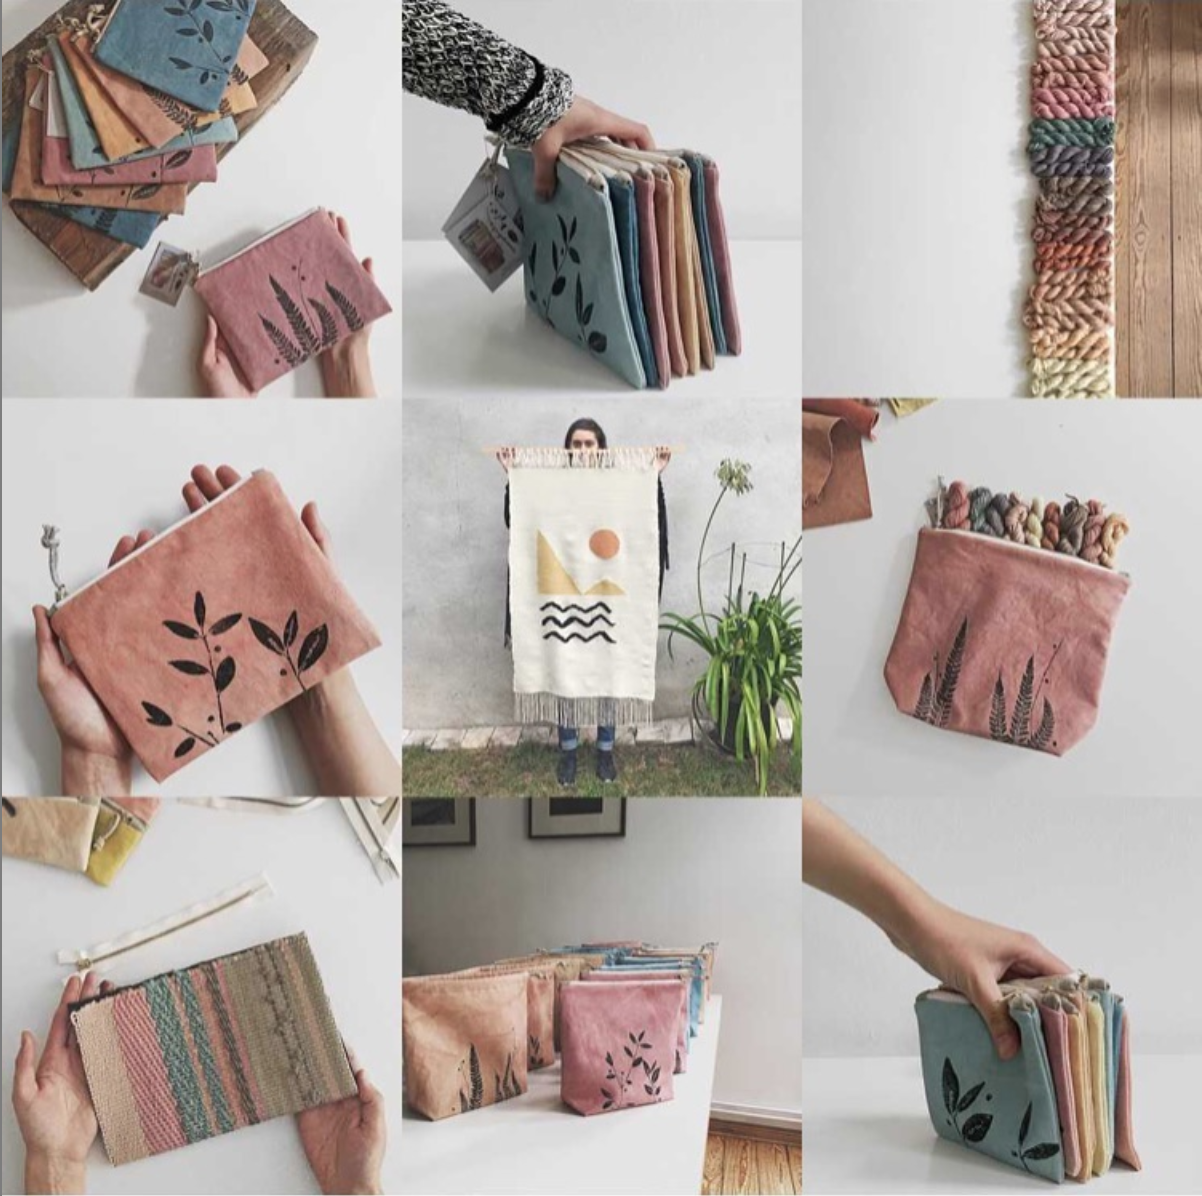 The best of Kaliko - a year roundup of a small textile business